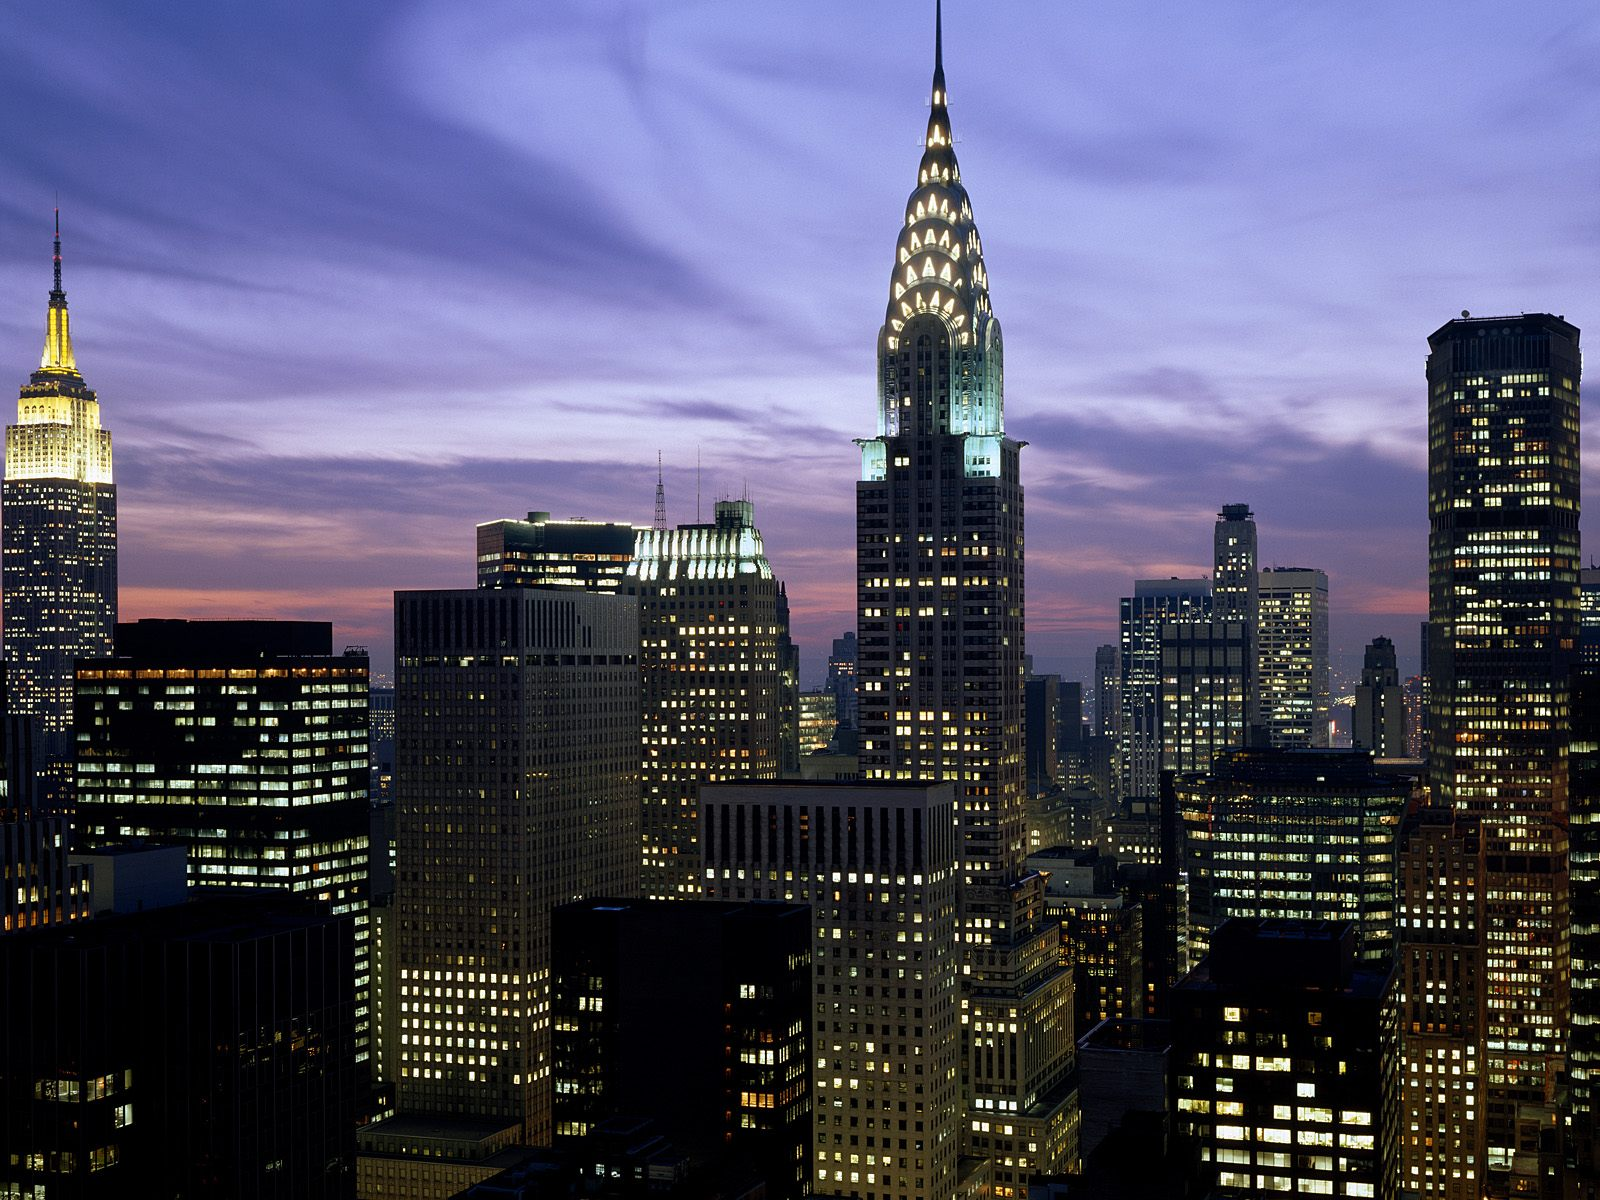 http://3.bp.blogspot.com/-gQZgat4UgCA/TjKbQybdgZI/AAAAAAAAAl8/YCViAoXZjBw/s1600/New-York-Evening-Wallpaper.jpg